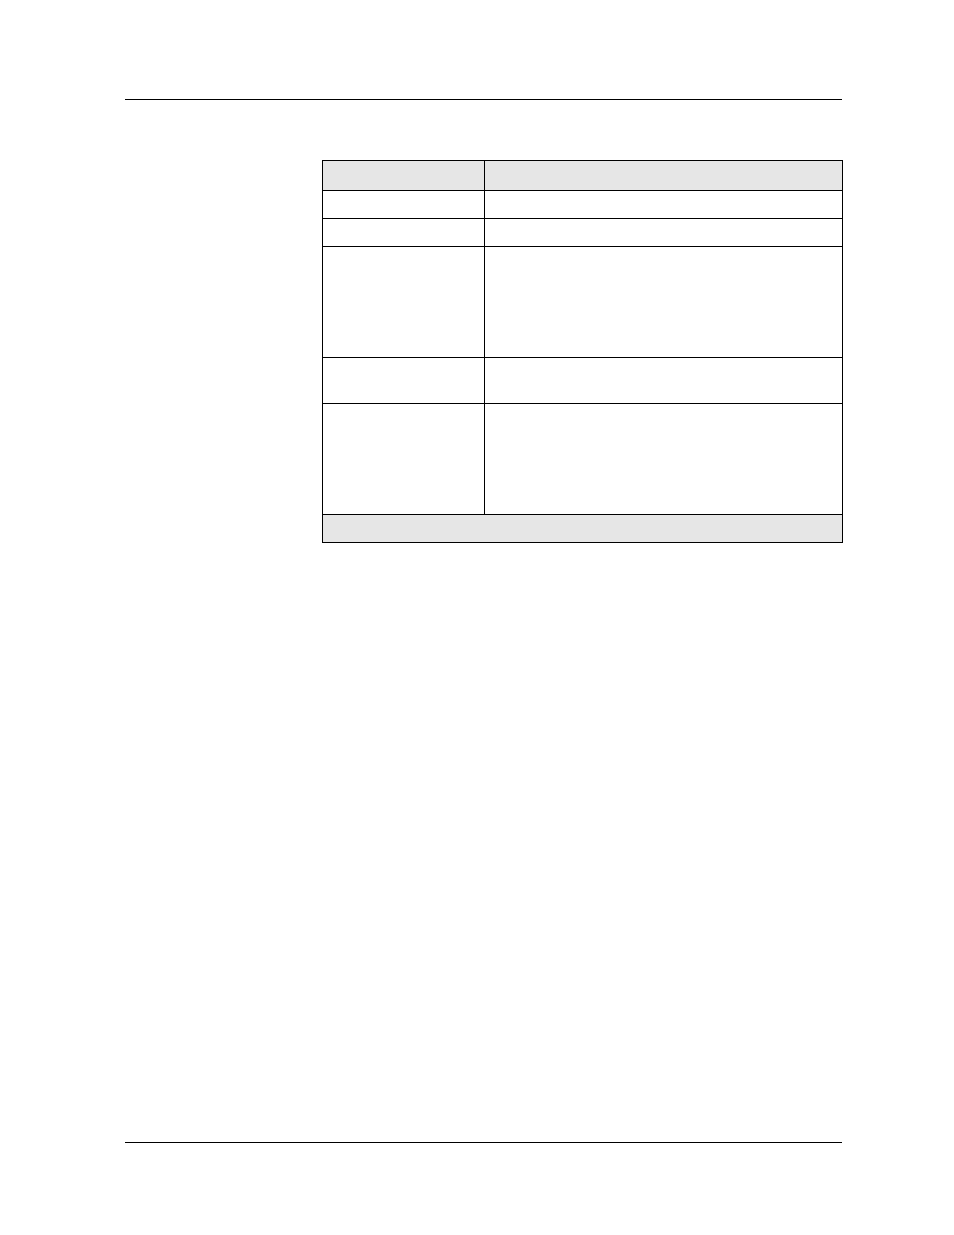 Cli commands, Creating a static route to a null interface